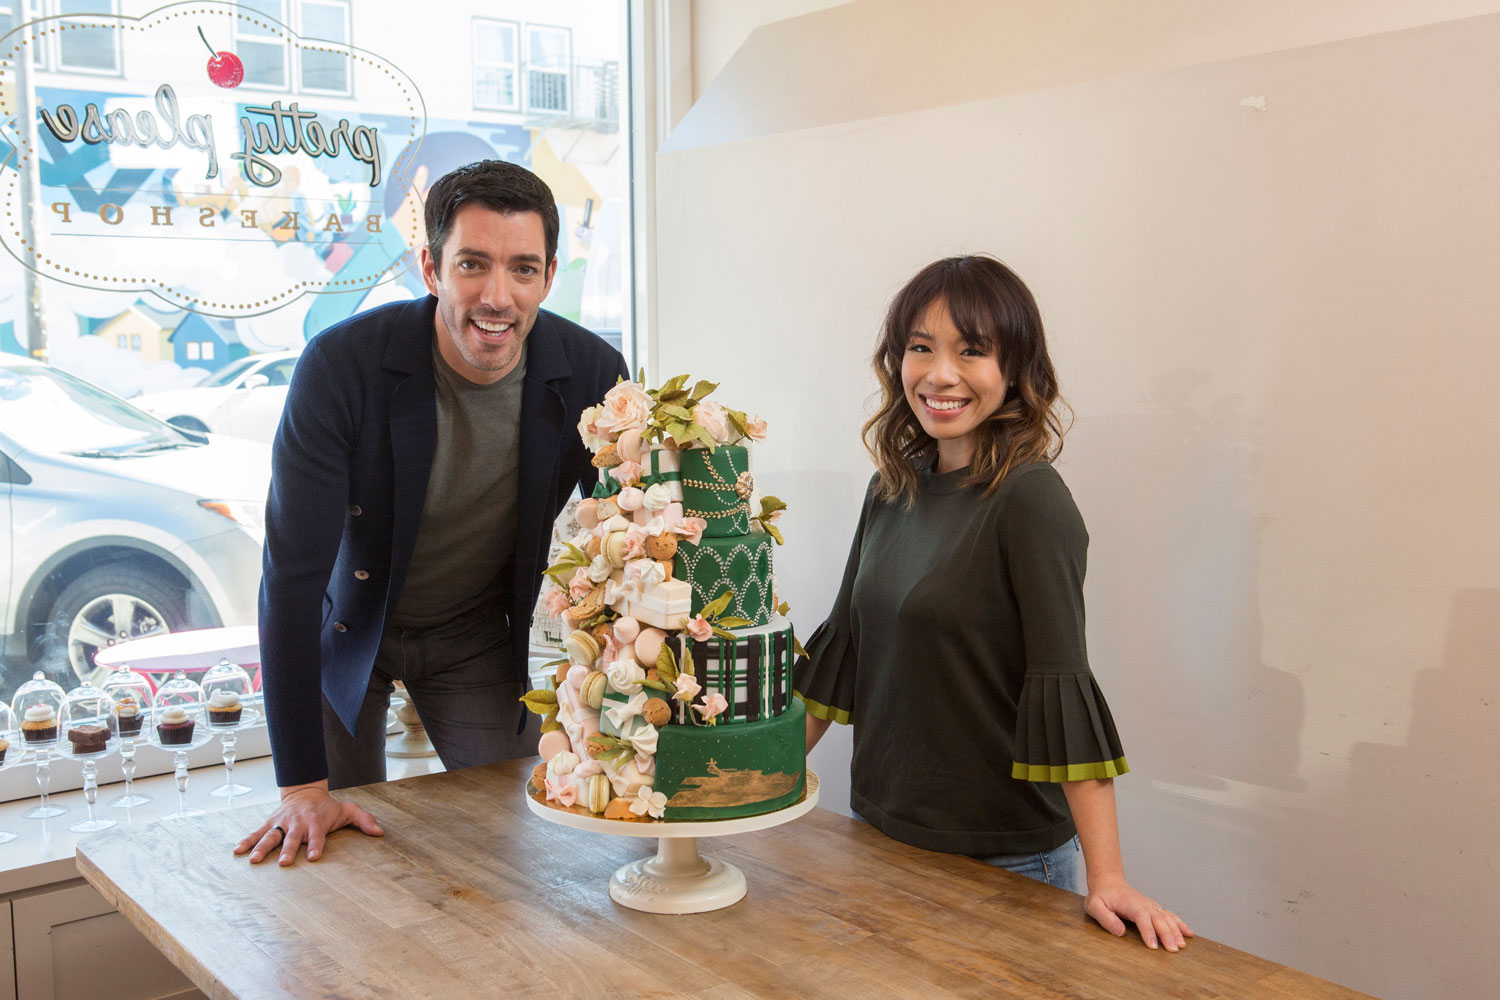 HGTV Property Brothers star Drew Scott with his bride Linda Phan wedding cake countdown food network